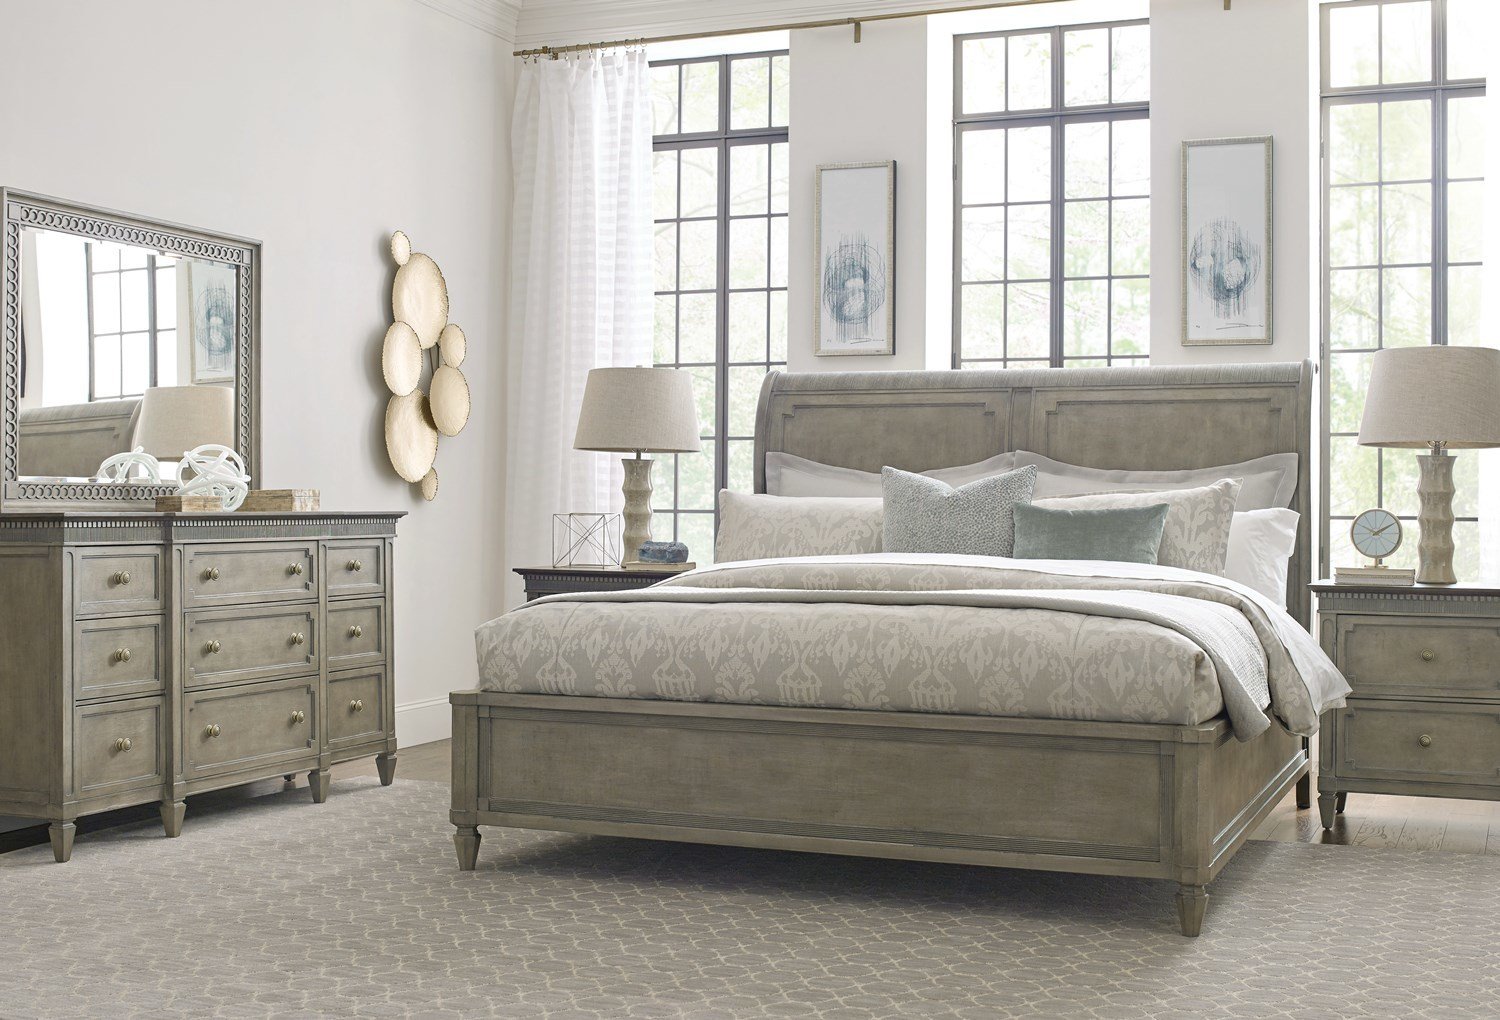 Etonnant Introducing Savona   A French Gray Bedroom And Dining Room Furniture  Collection From American Drew